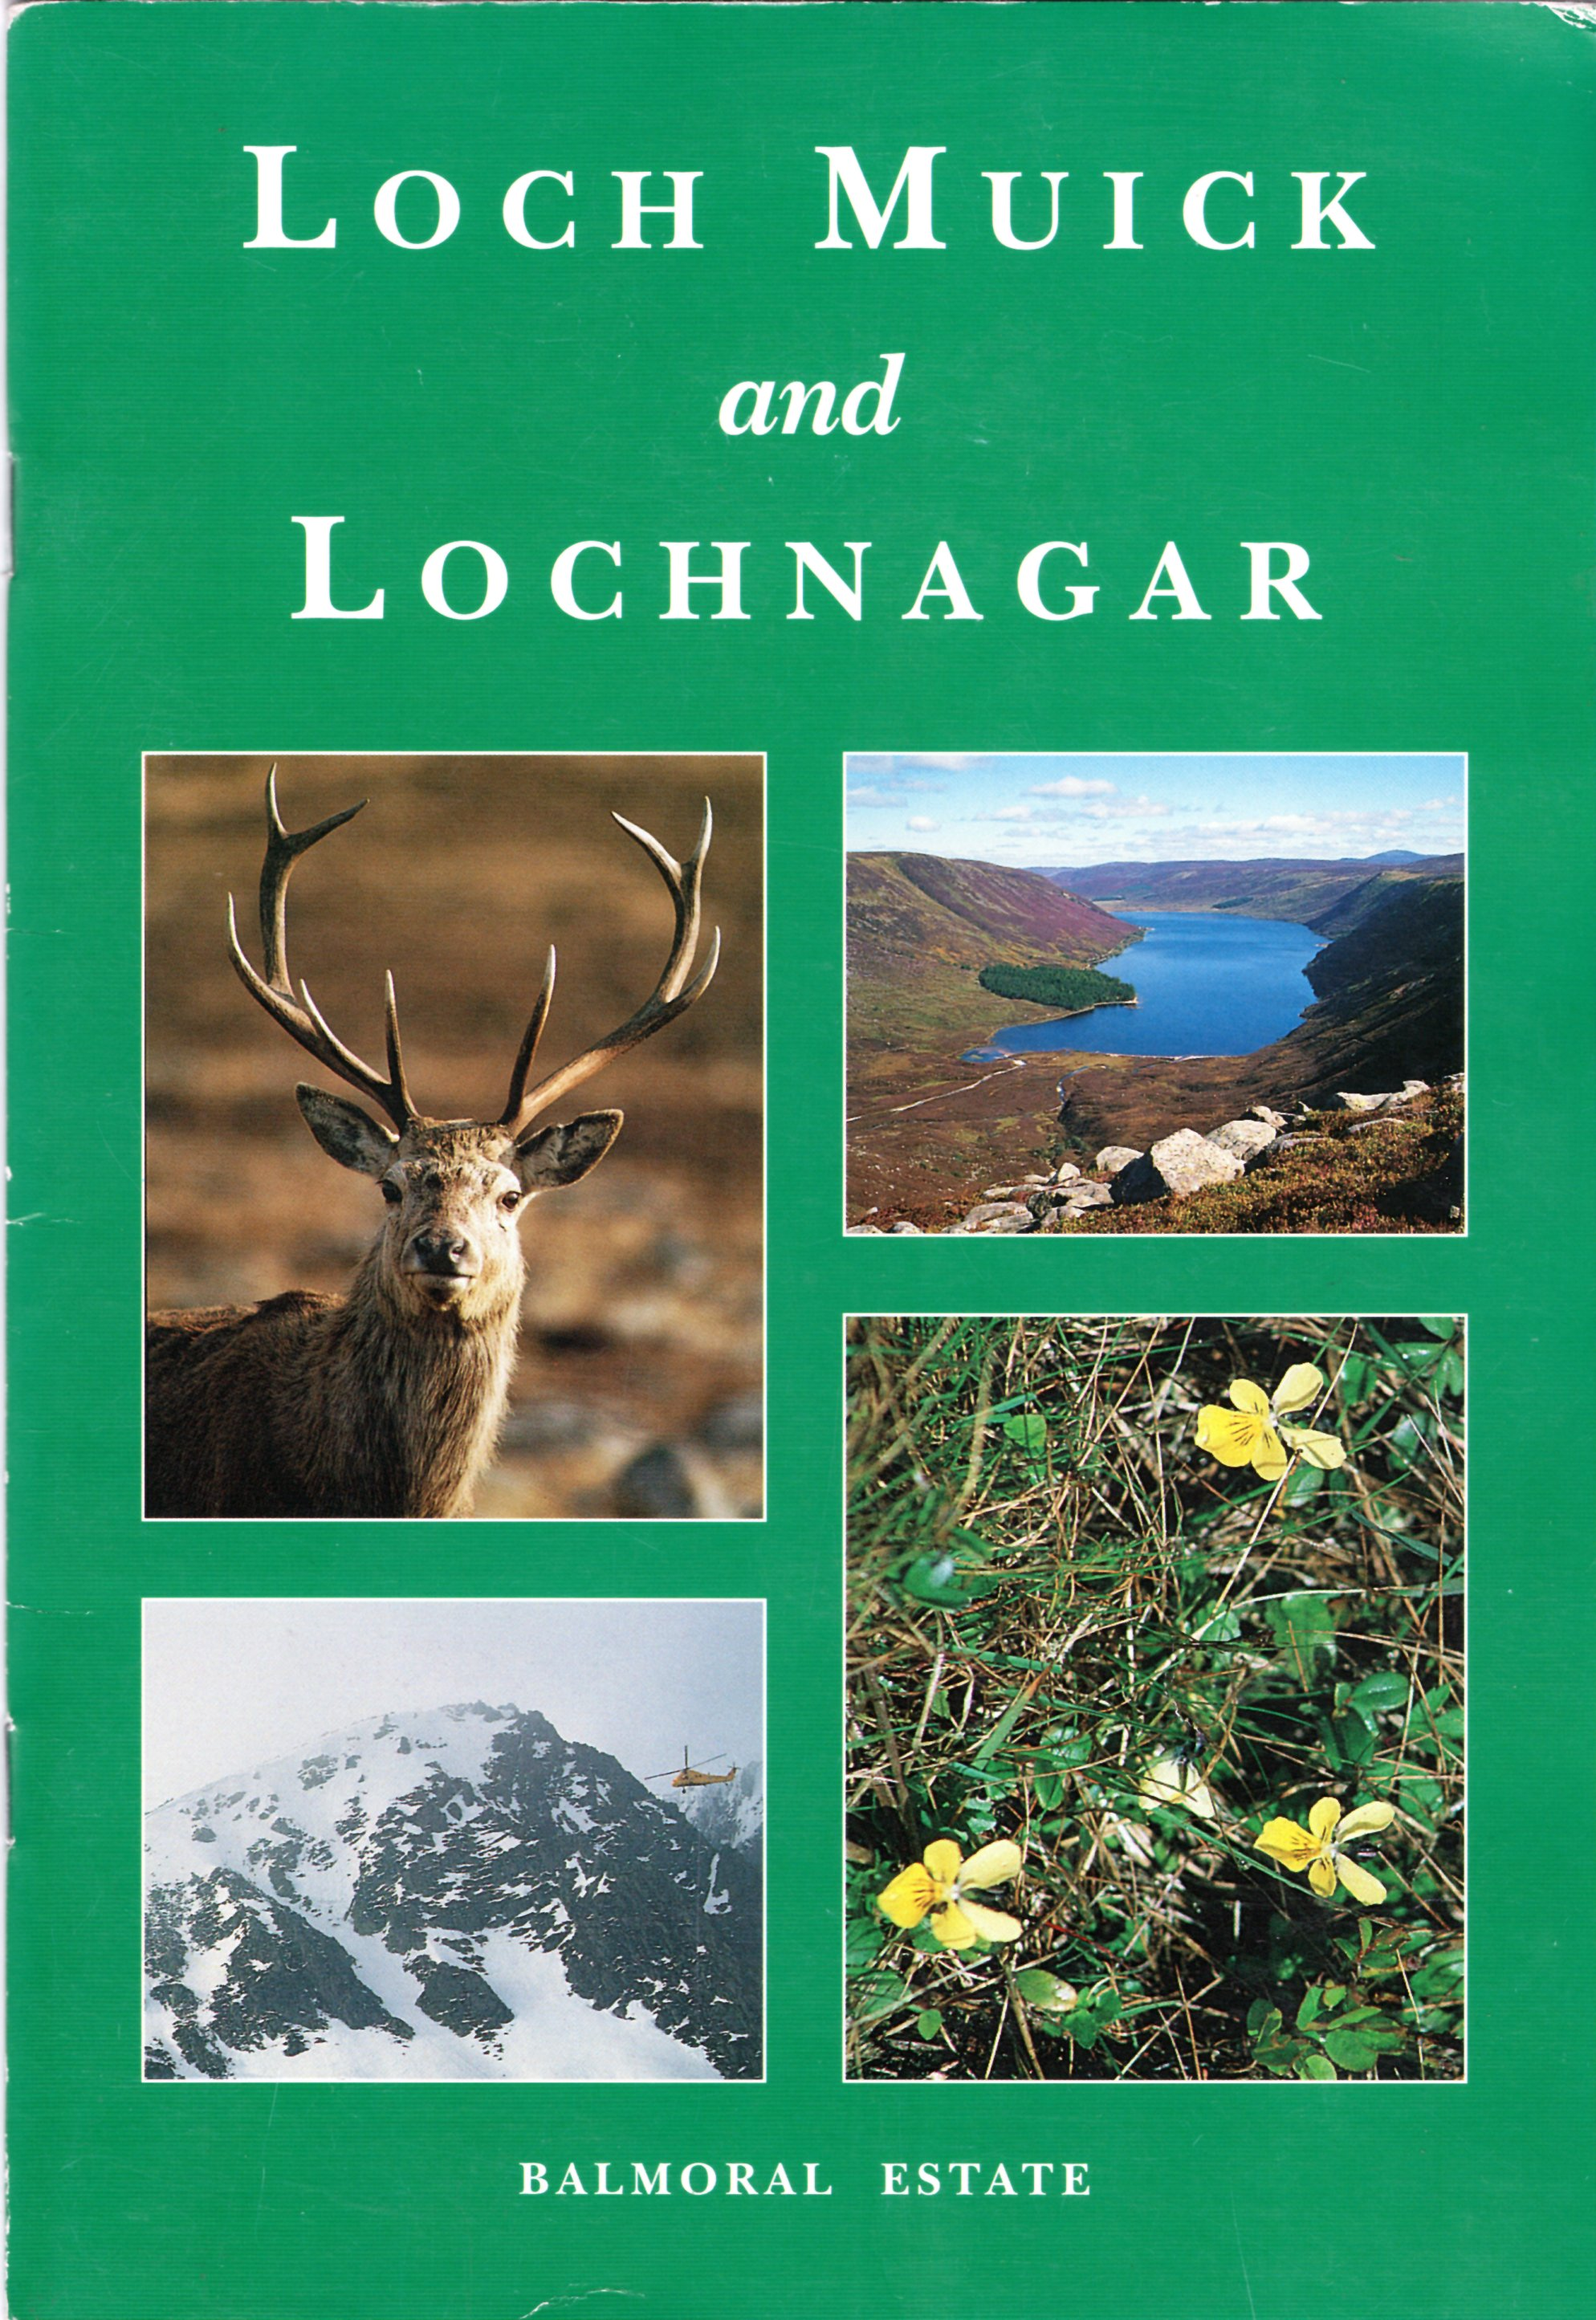 Image for Loch Muick and Lochnagar Wildlife Reserve Handbook.